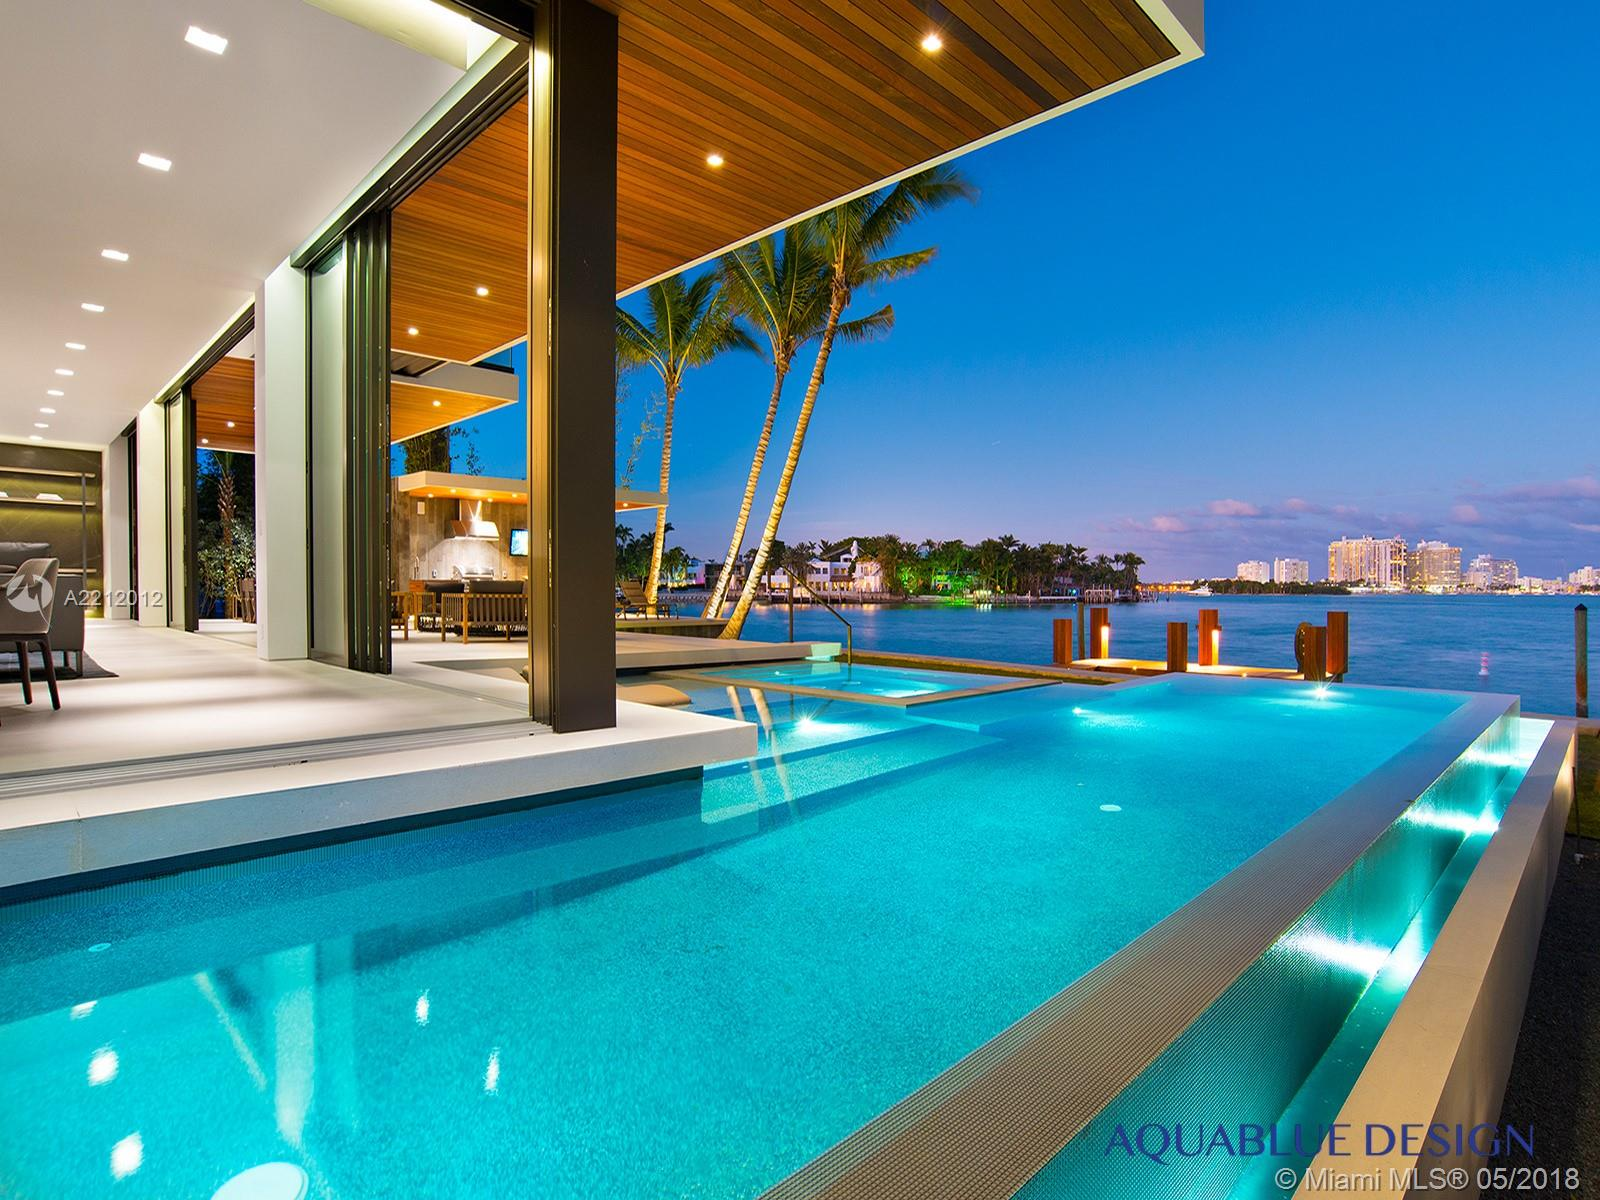 Contemporary Miami Beach Luxury Waterfront Home By The Aquablue Group. 10, 050 Square Feet Of Open Plan Living Spaces With Idyllic Transitions To Expansive Outdoor Living Areas. Overlooks 110 Feet Of Waterfront Views Of South Beach. Floor To Ceiling Rear Sliding Doors, Infinity-Edge Pool And Spa, Custom Italian Kitchen And Closets, Elevator To Rooftop Terrace, Fully Automated Home With Crestron System. Luxury Italian Furniture Included. Completed January, 2018.